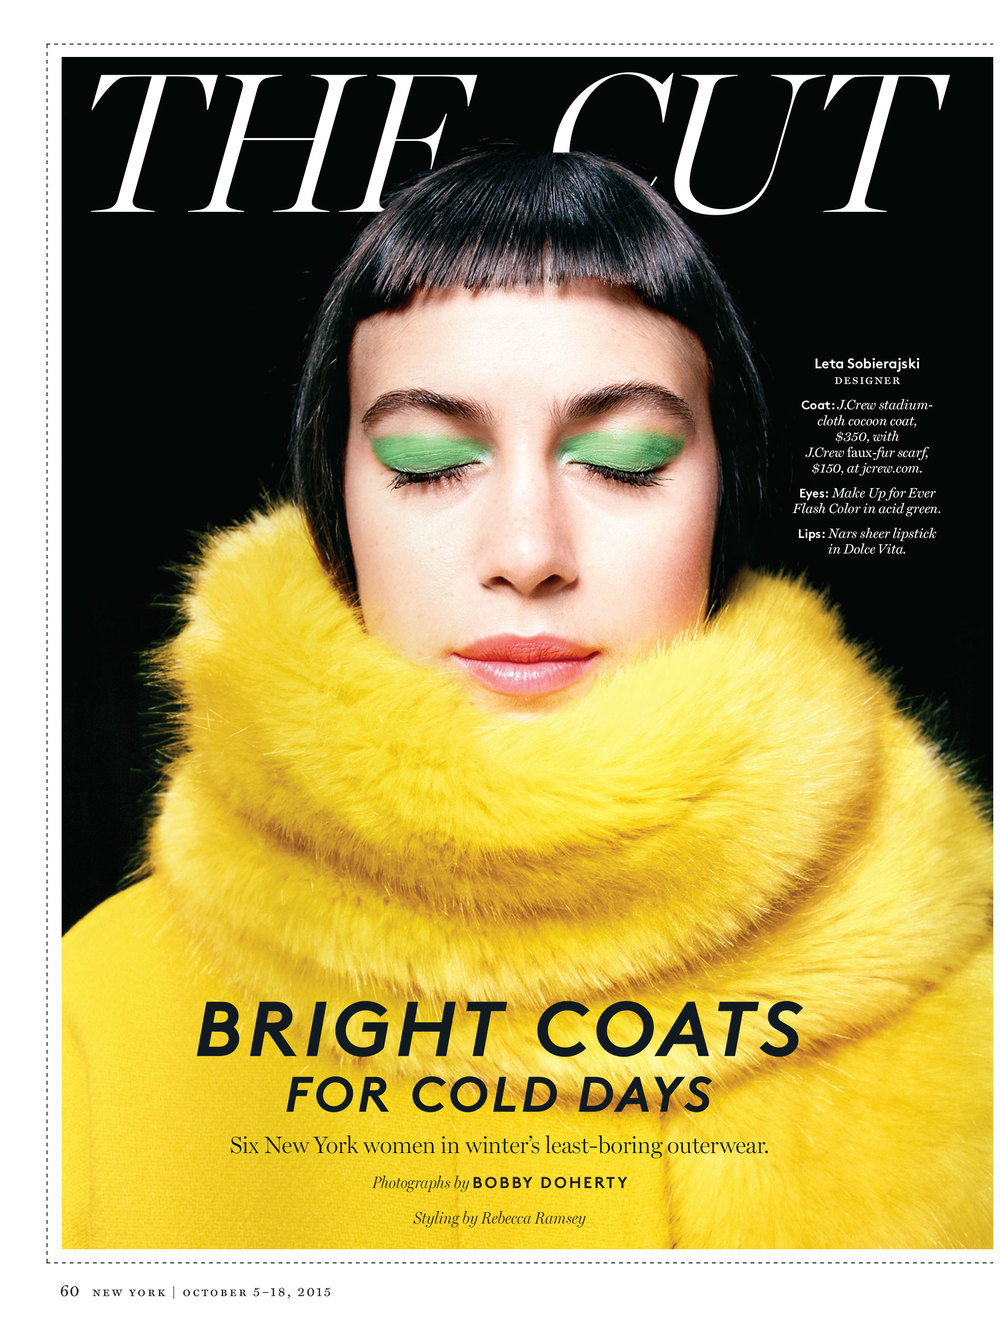 Bright Coats for Cold Days